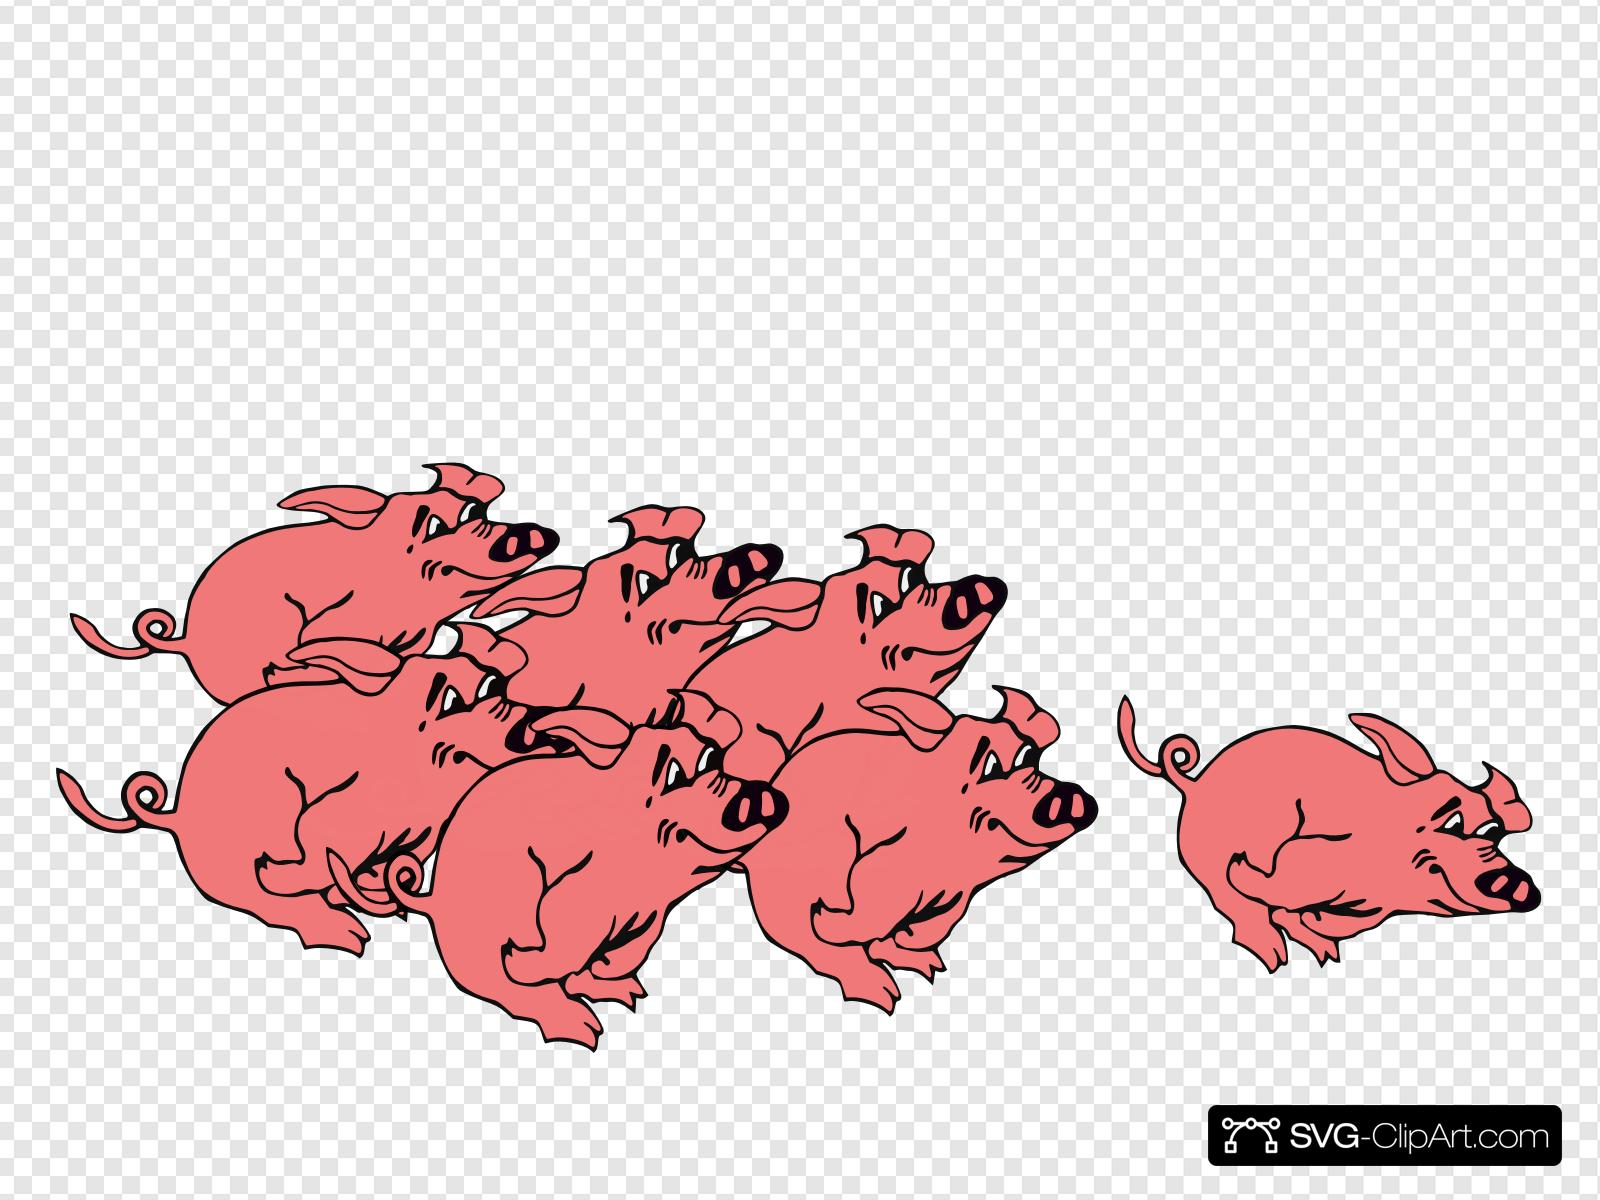 Pig racing clipart clip art transparent library Pigs Racing Without Numbers Clip art, Icon and SVG - SVG Clipart clip art transparent library